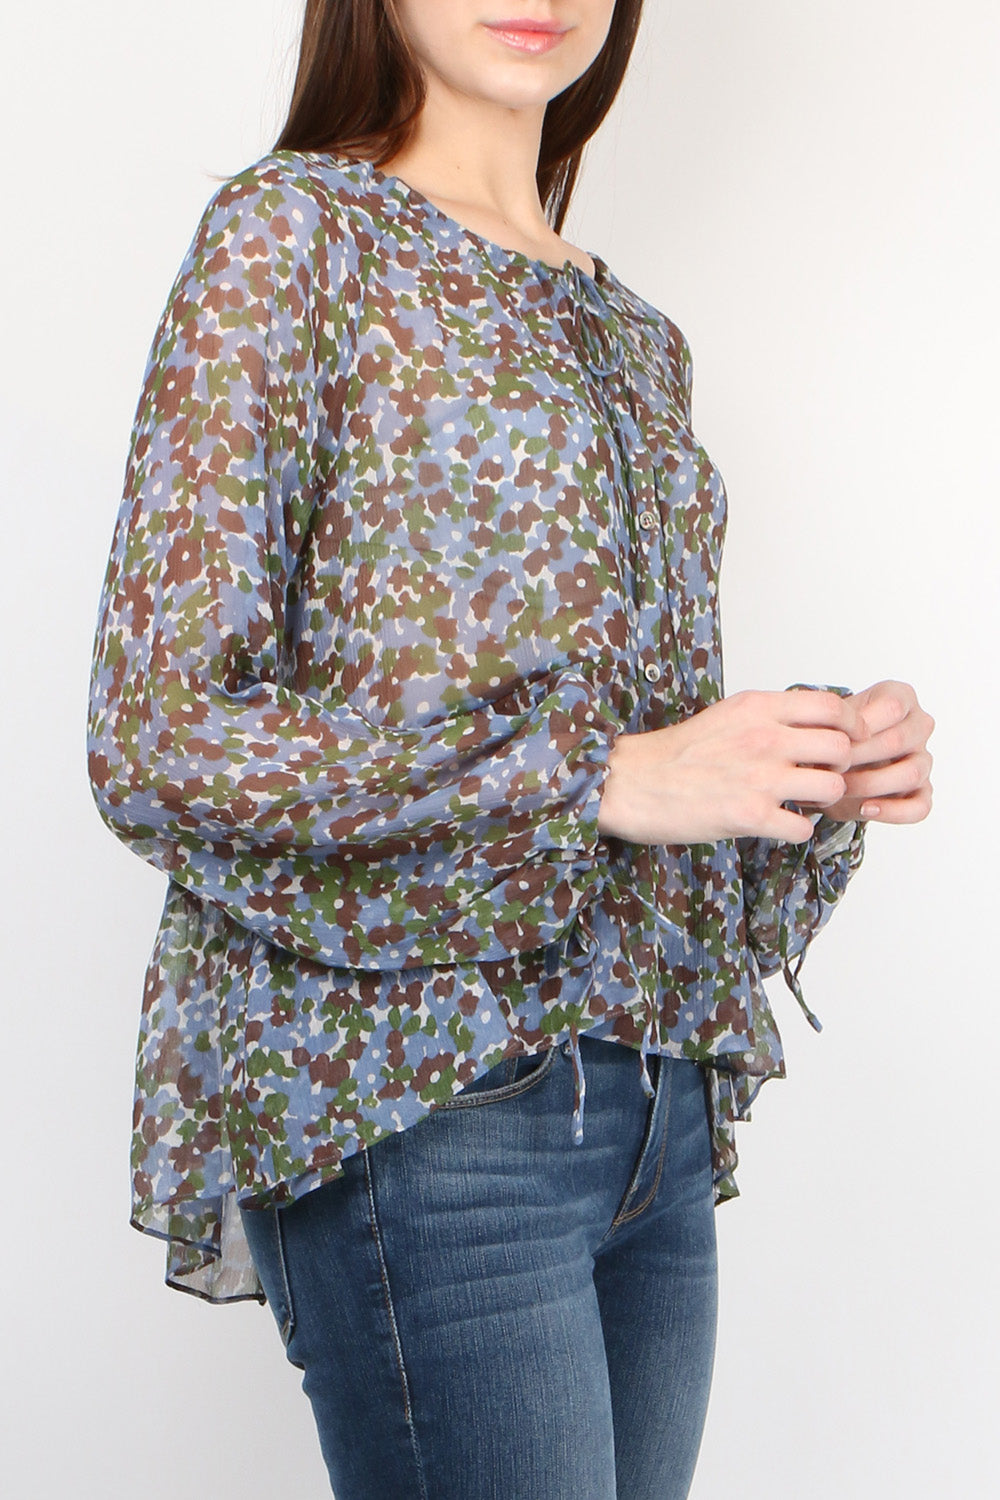 Lee Mathews Palmer Raglan Top in Juniper